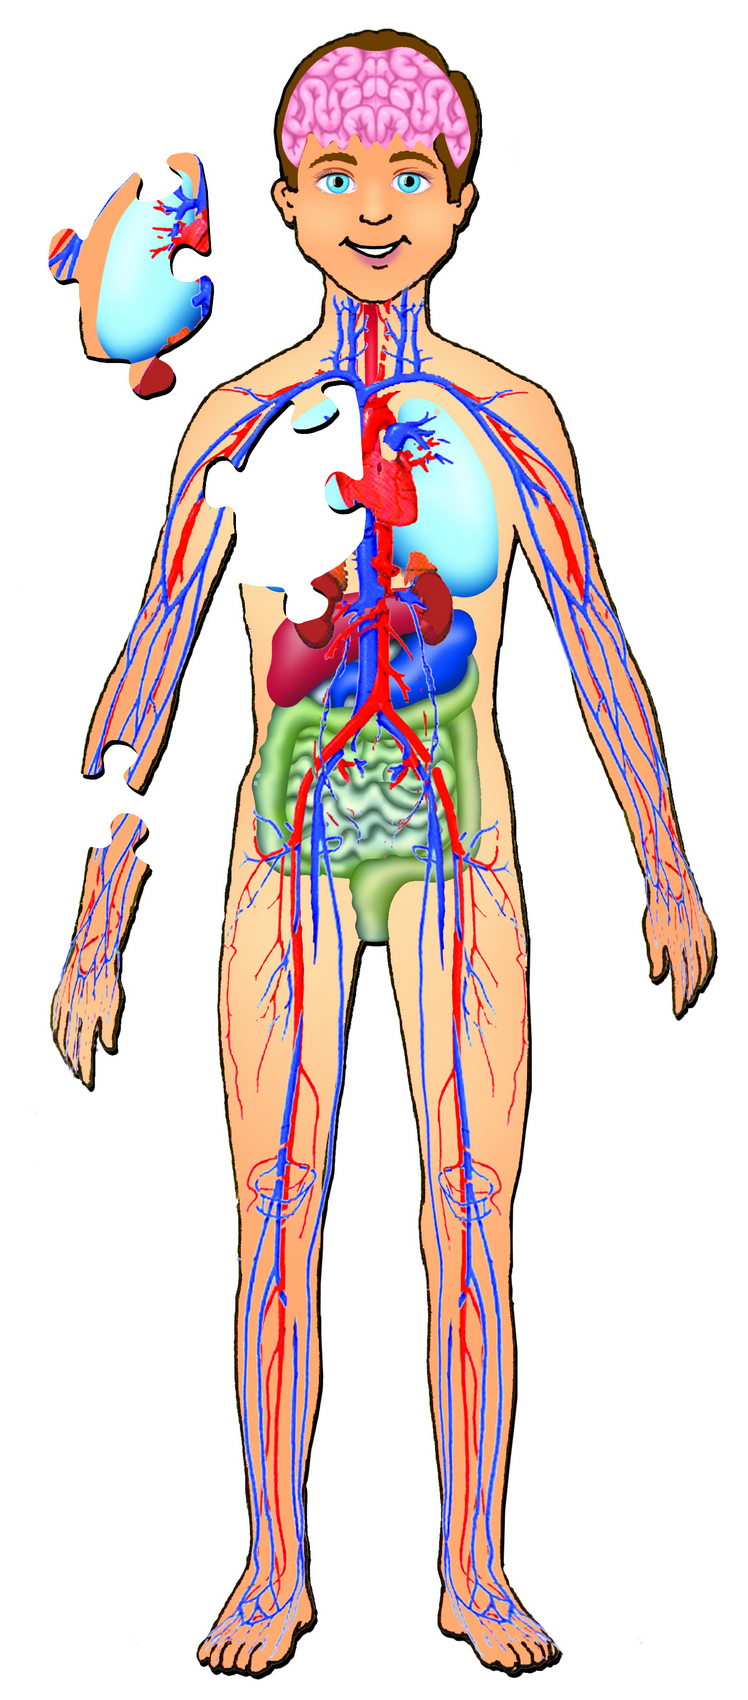 Anatomy human body